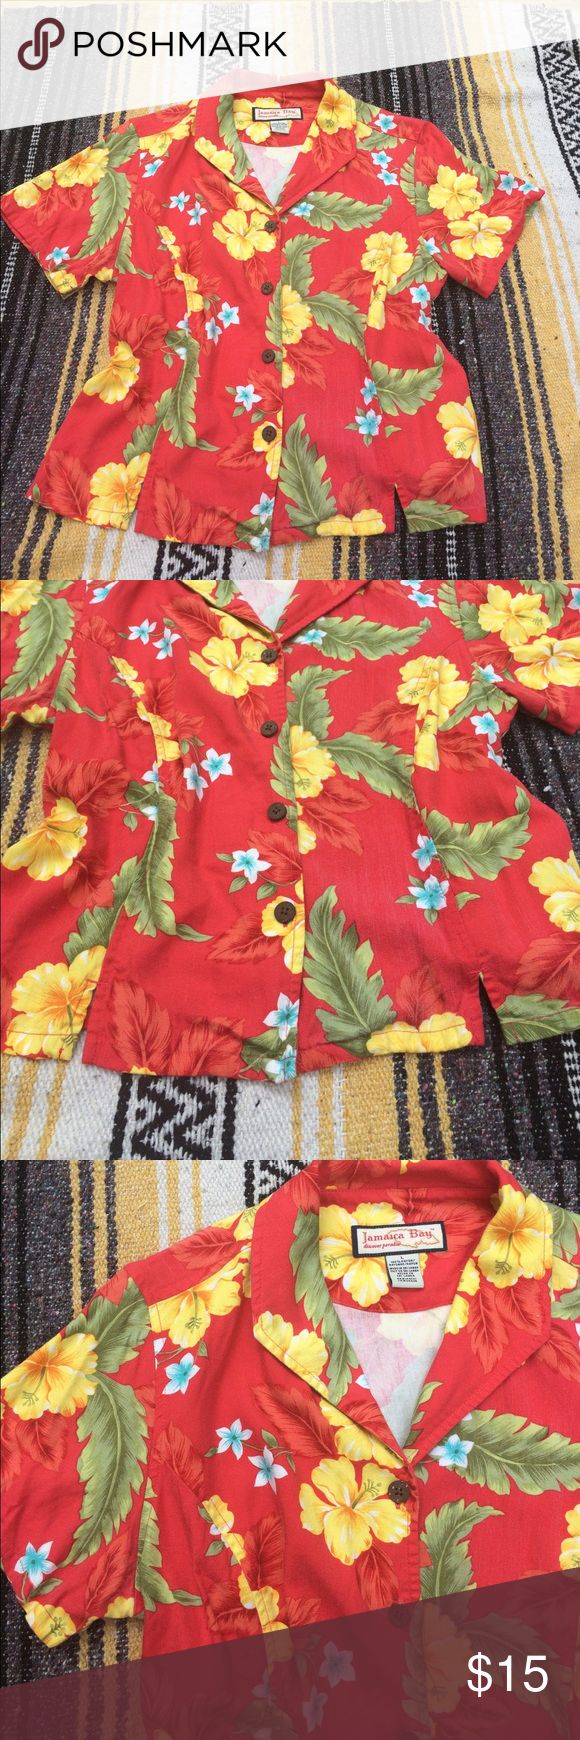 """Vintage Hawaiian Shirt Vintage Jamaica bay Hawaiian shirt. Extremely soft, 100% rayon. Throw it on over your swimsuit for a fun beach look or with a pencil skirt to throw some pineapple at your work look. Its 5 o clock somewhere! Flat measurements ☕️️ bust: 21"""" // length: 20"""" // shoulders: 16"""" // Vintage Tops Button Down Shirts"""